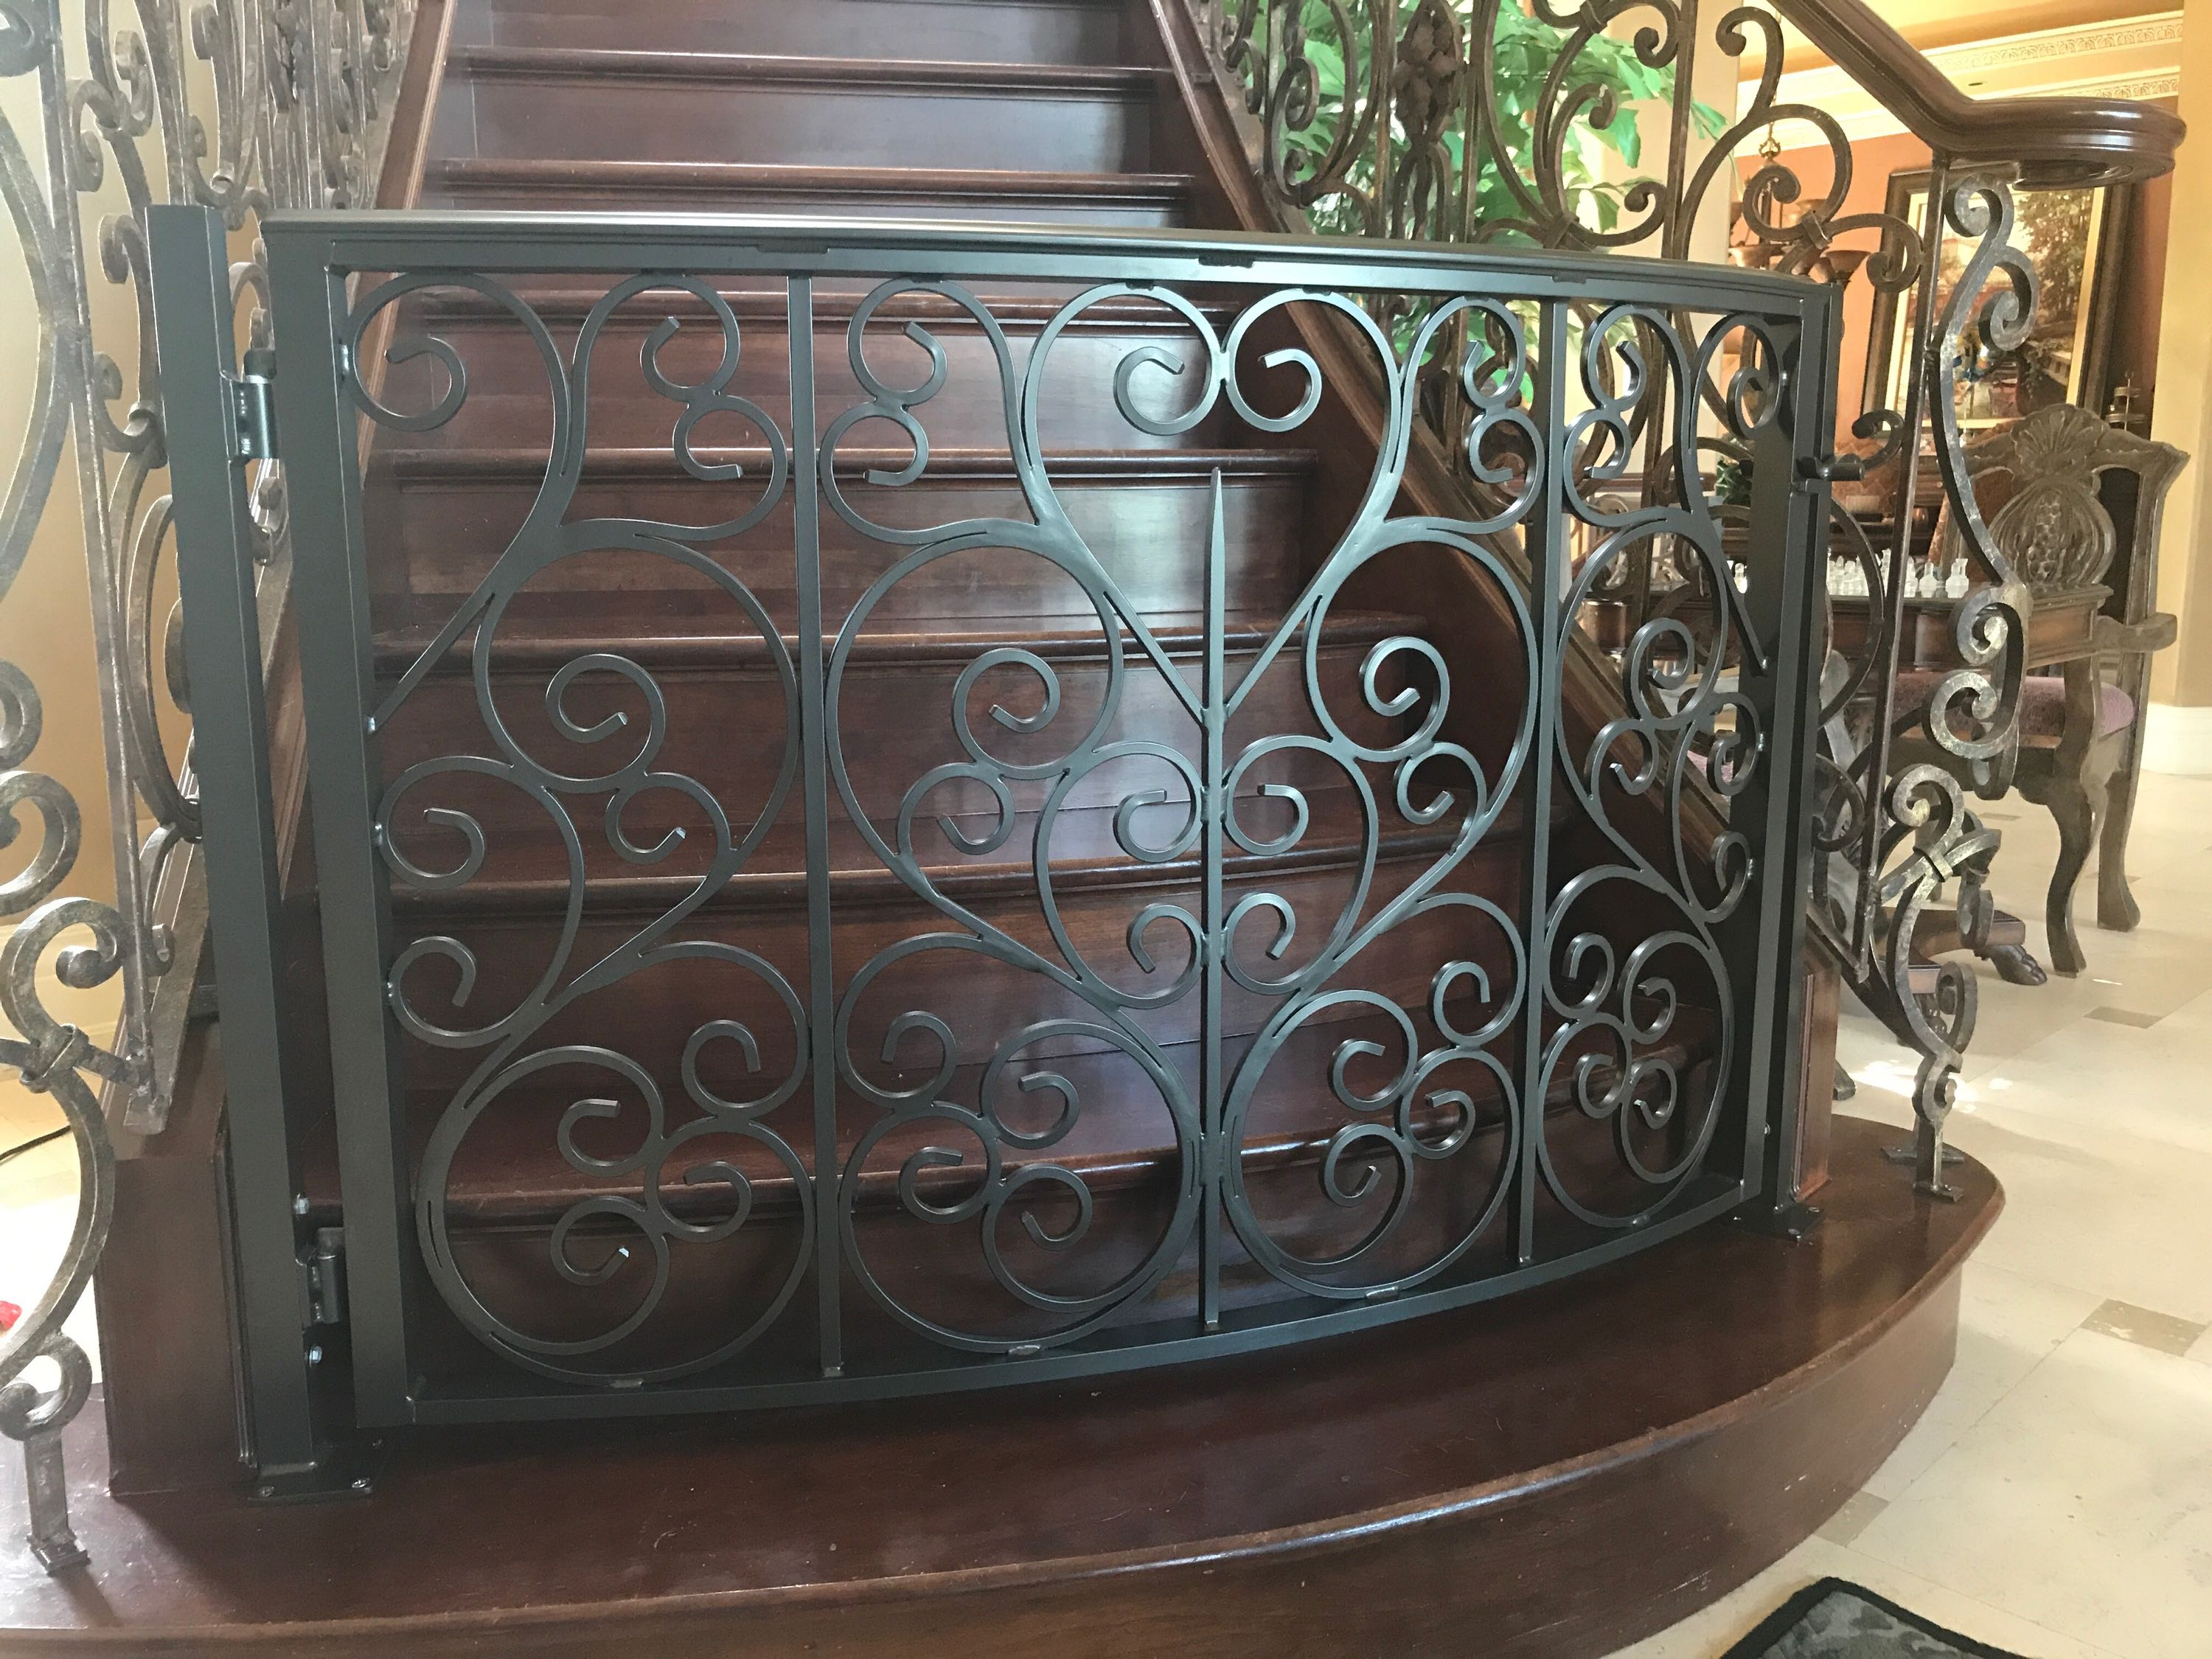 Decorative Spiral & Railings